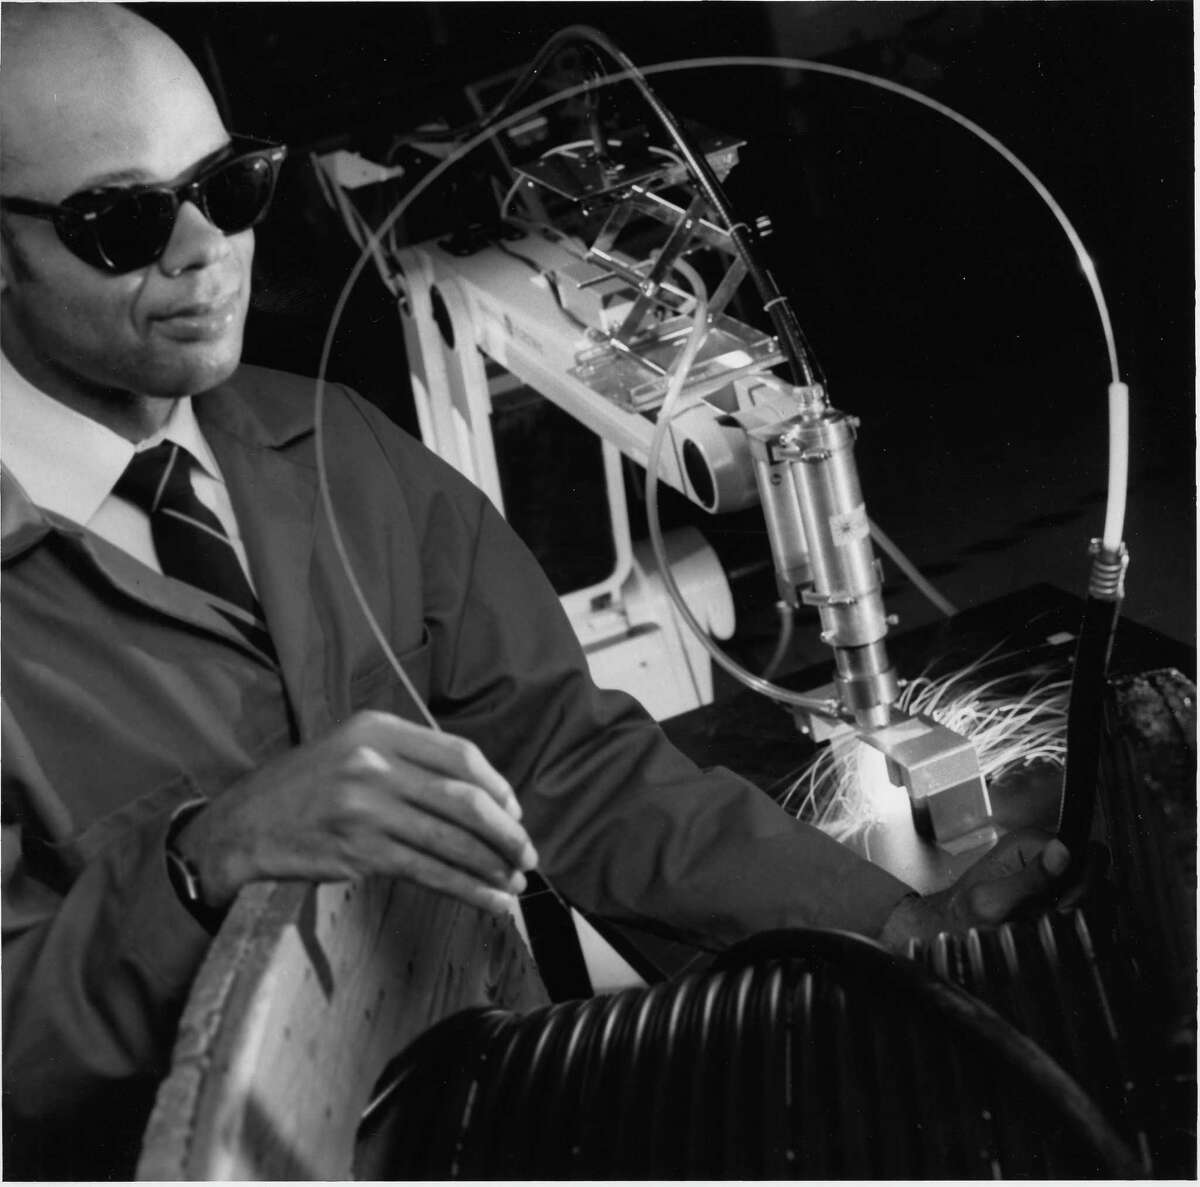 Marshall Jones, who holds 55 U.S. patents and is being inducted into the National Inventors Hall of Fame, poses with an industrial laser he used to make innovative breakthroughs in manufacturing. (Photo courtesy of General Electric)